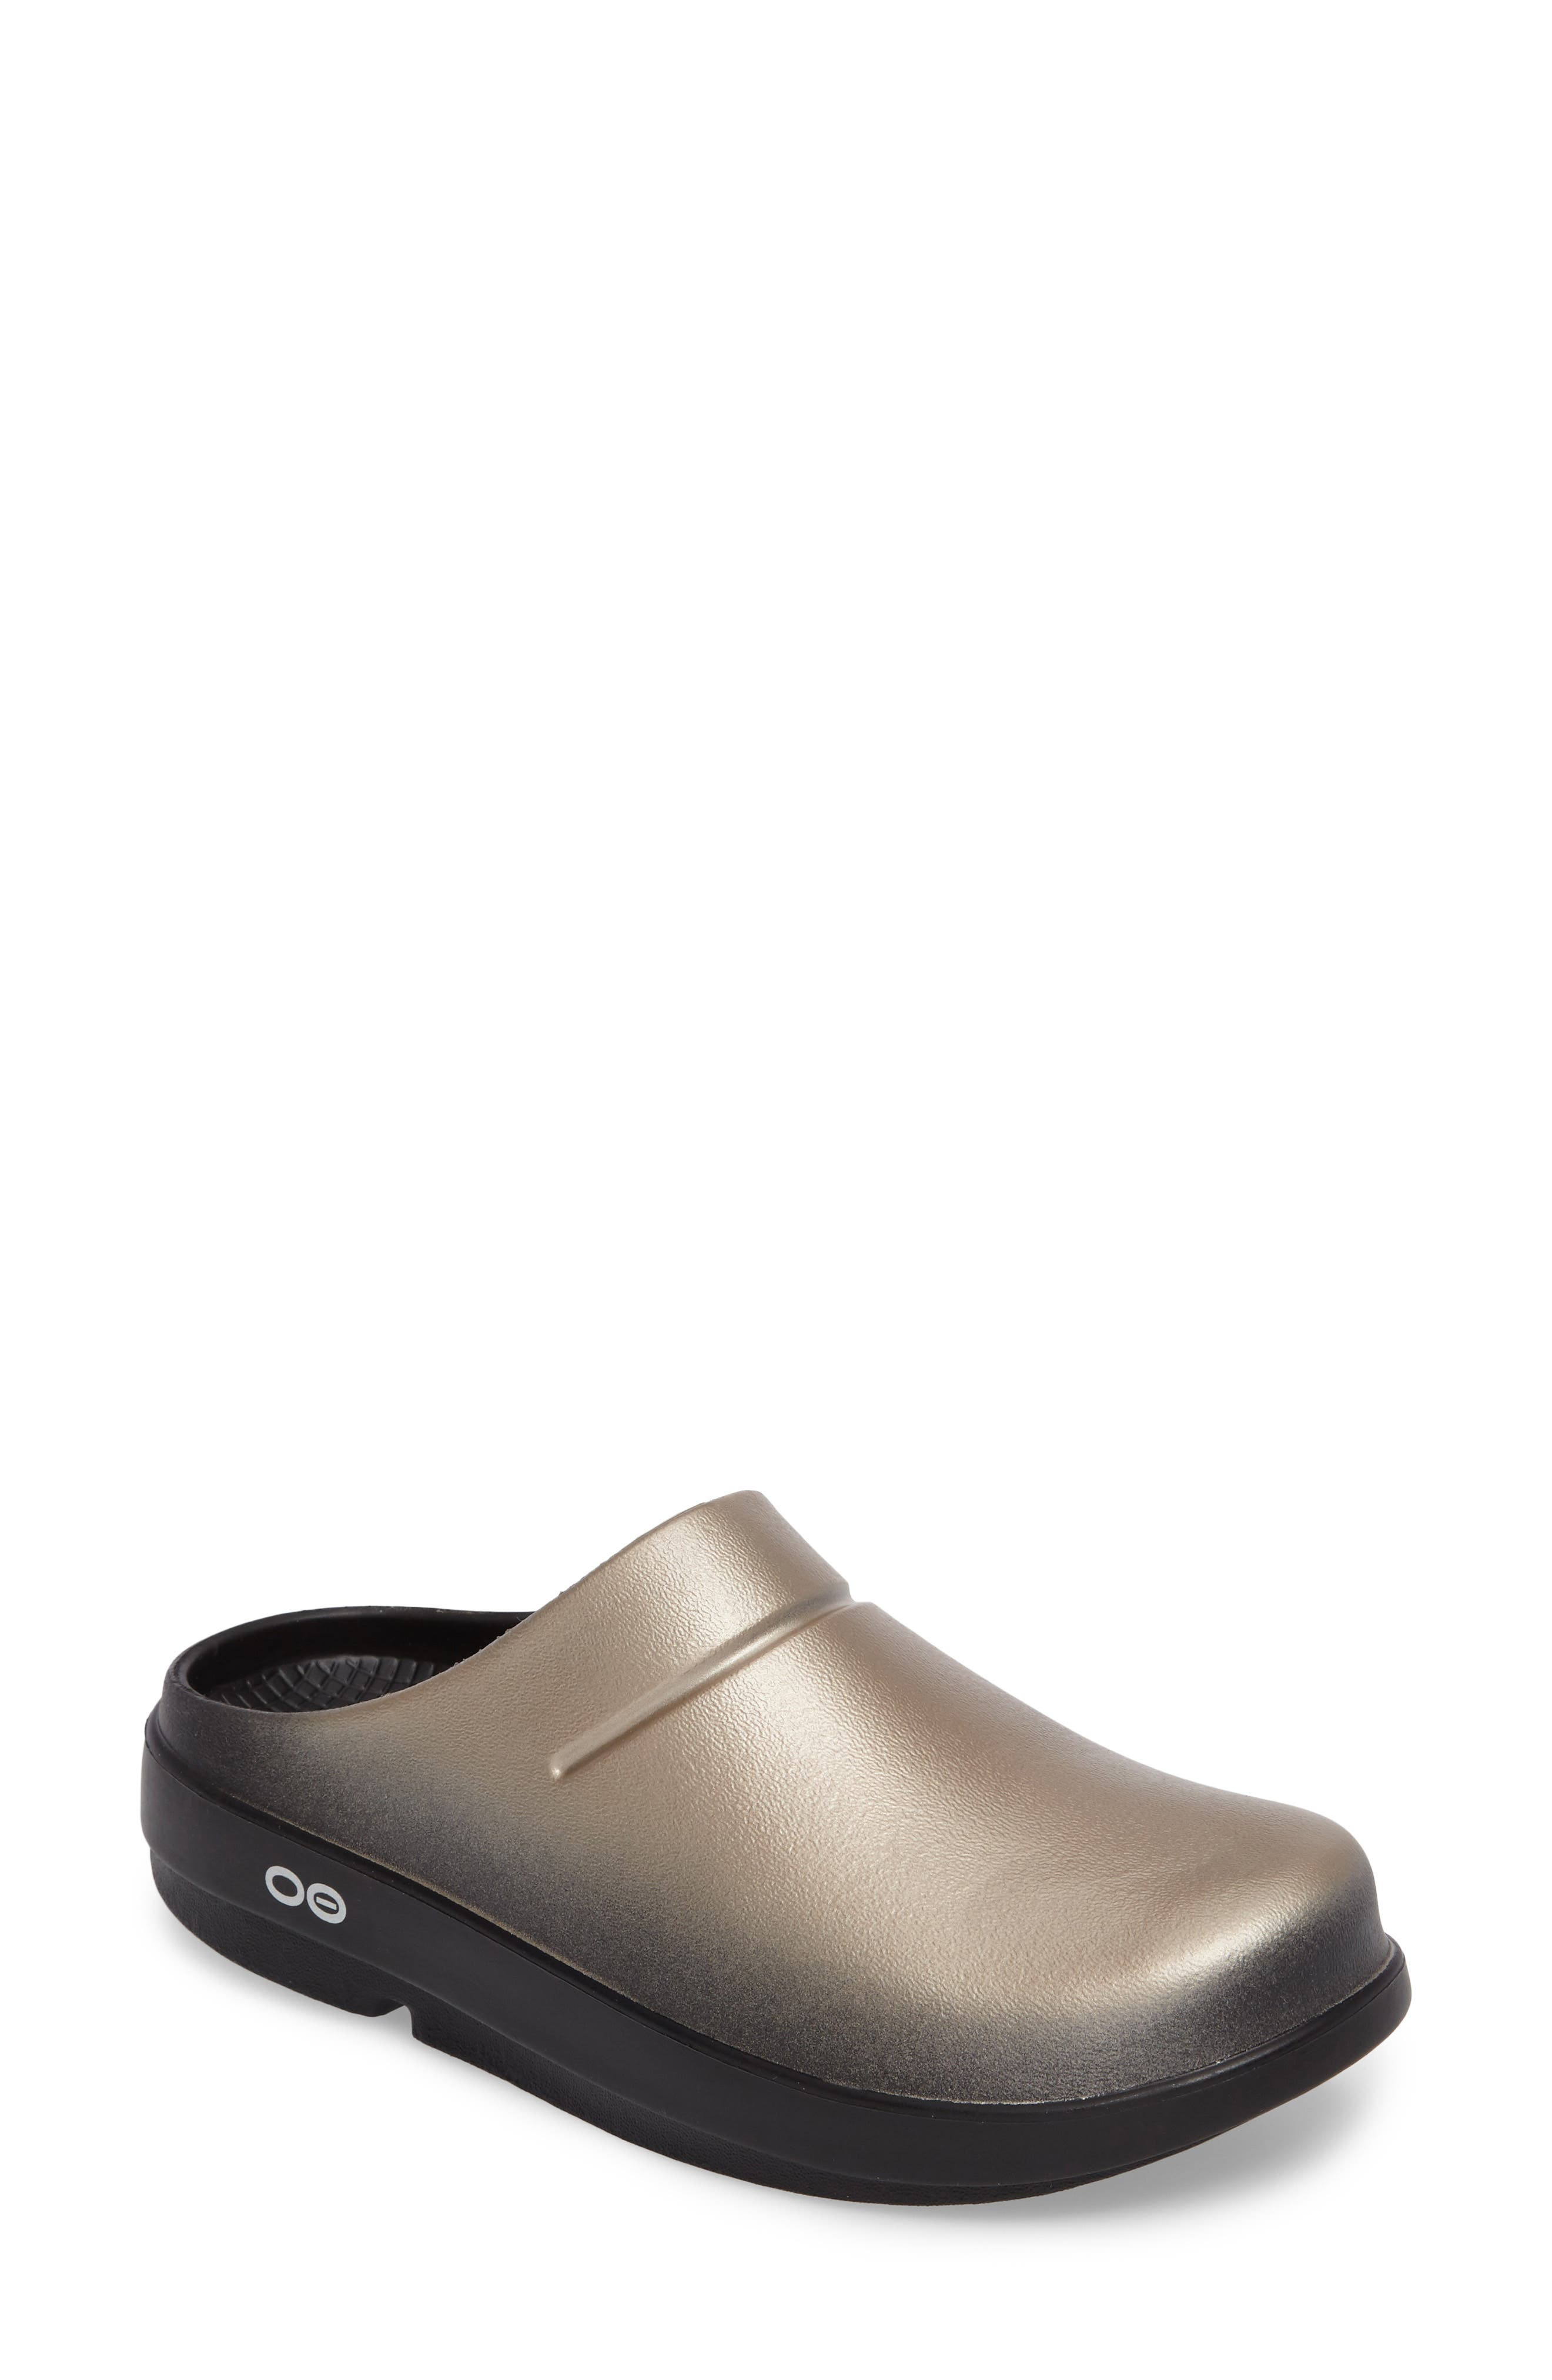 OOcloog Luxe Clog,                             Main thumbnail 1, color,                             Latte